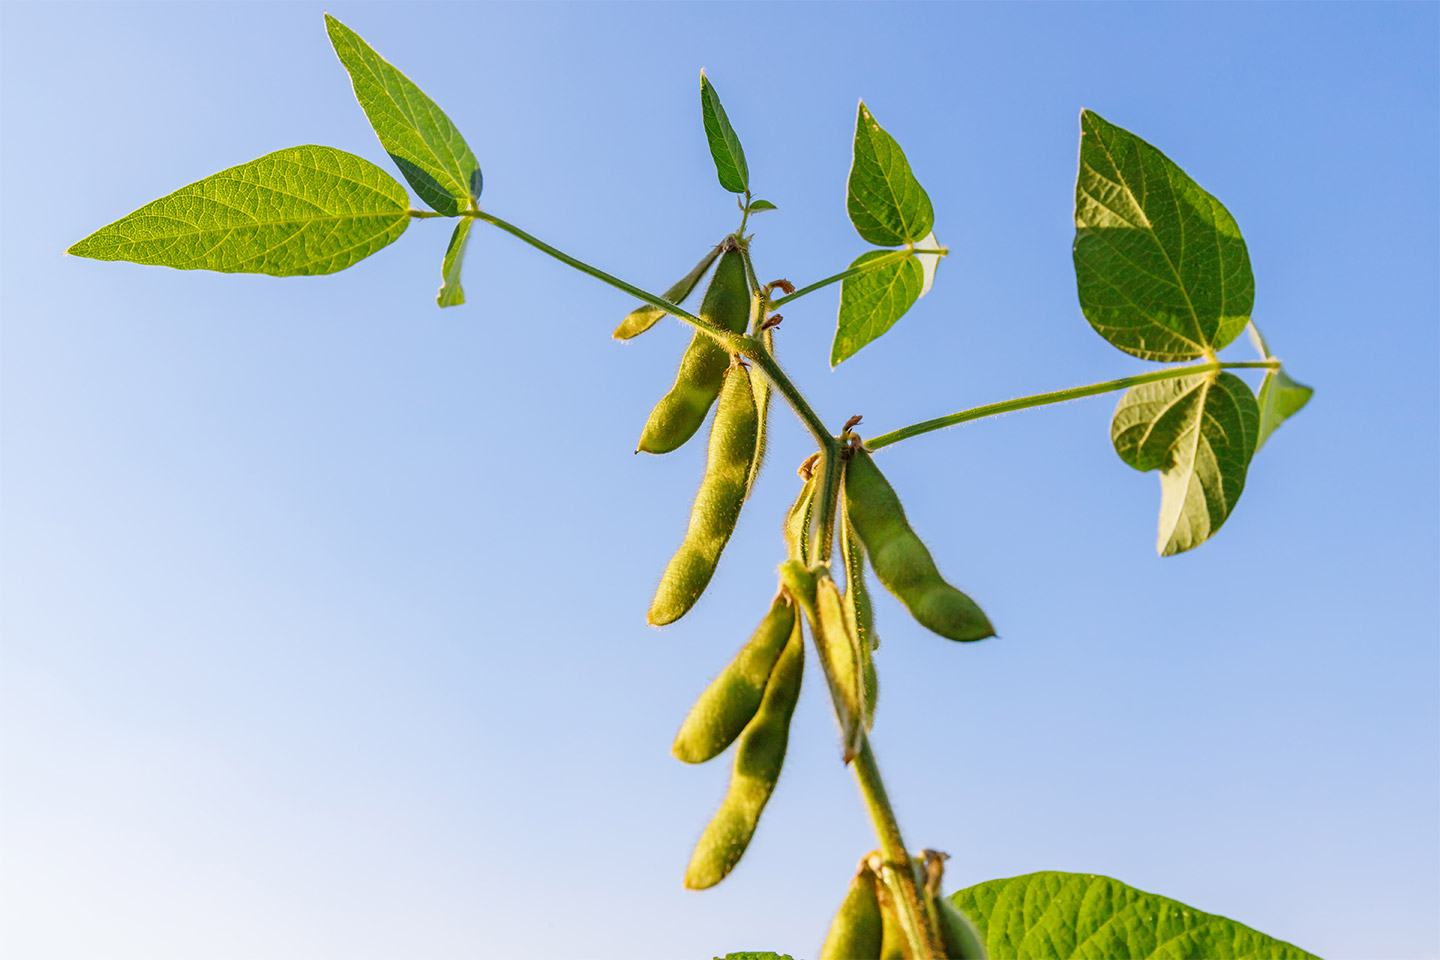 Soybean plant with sky